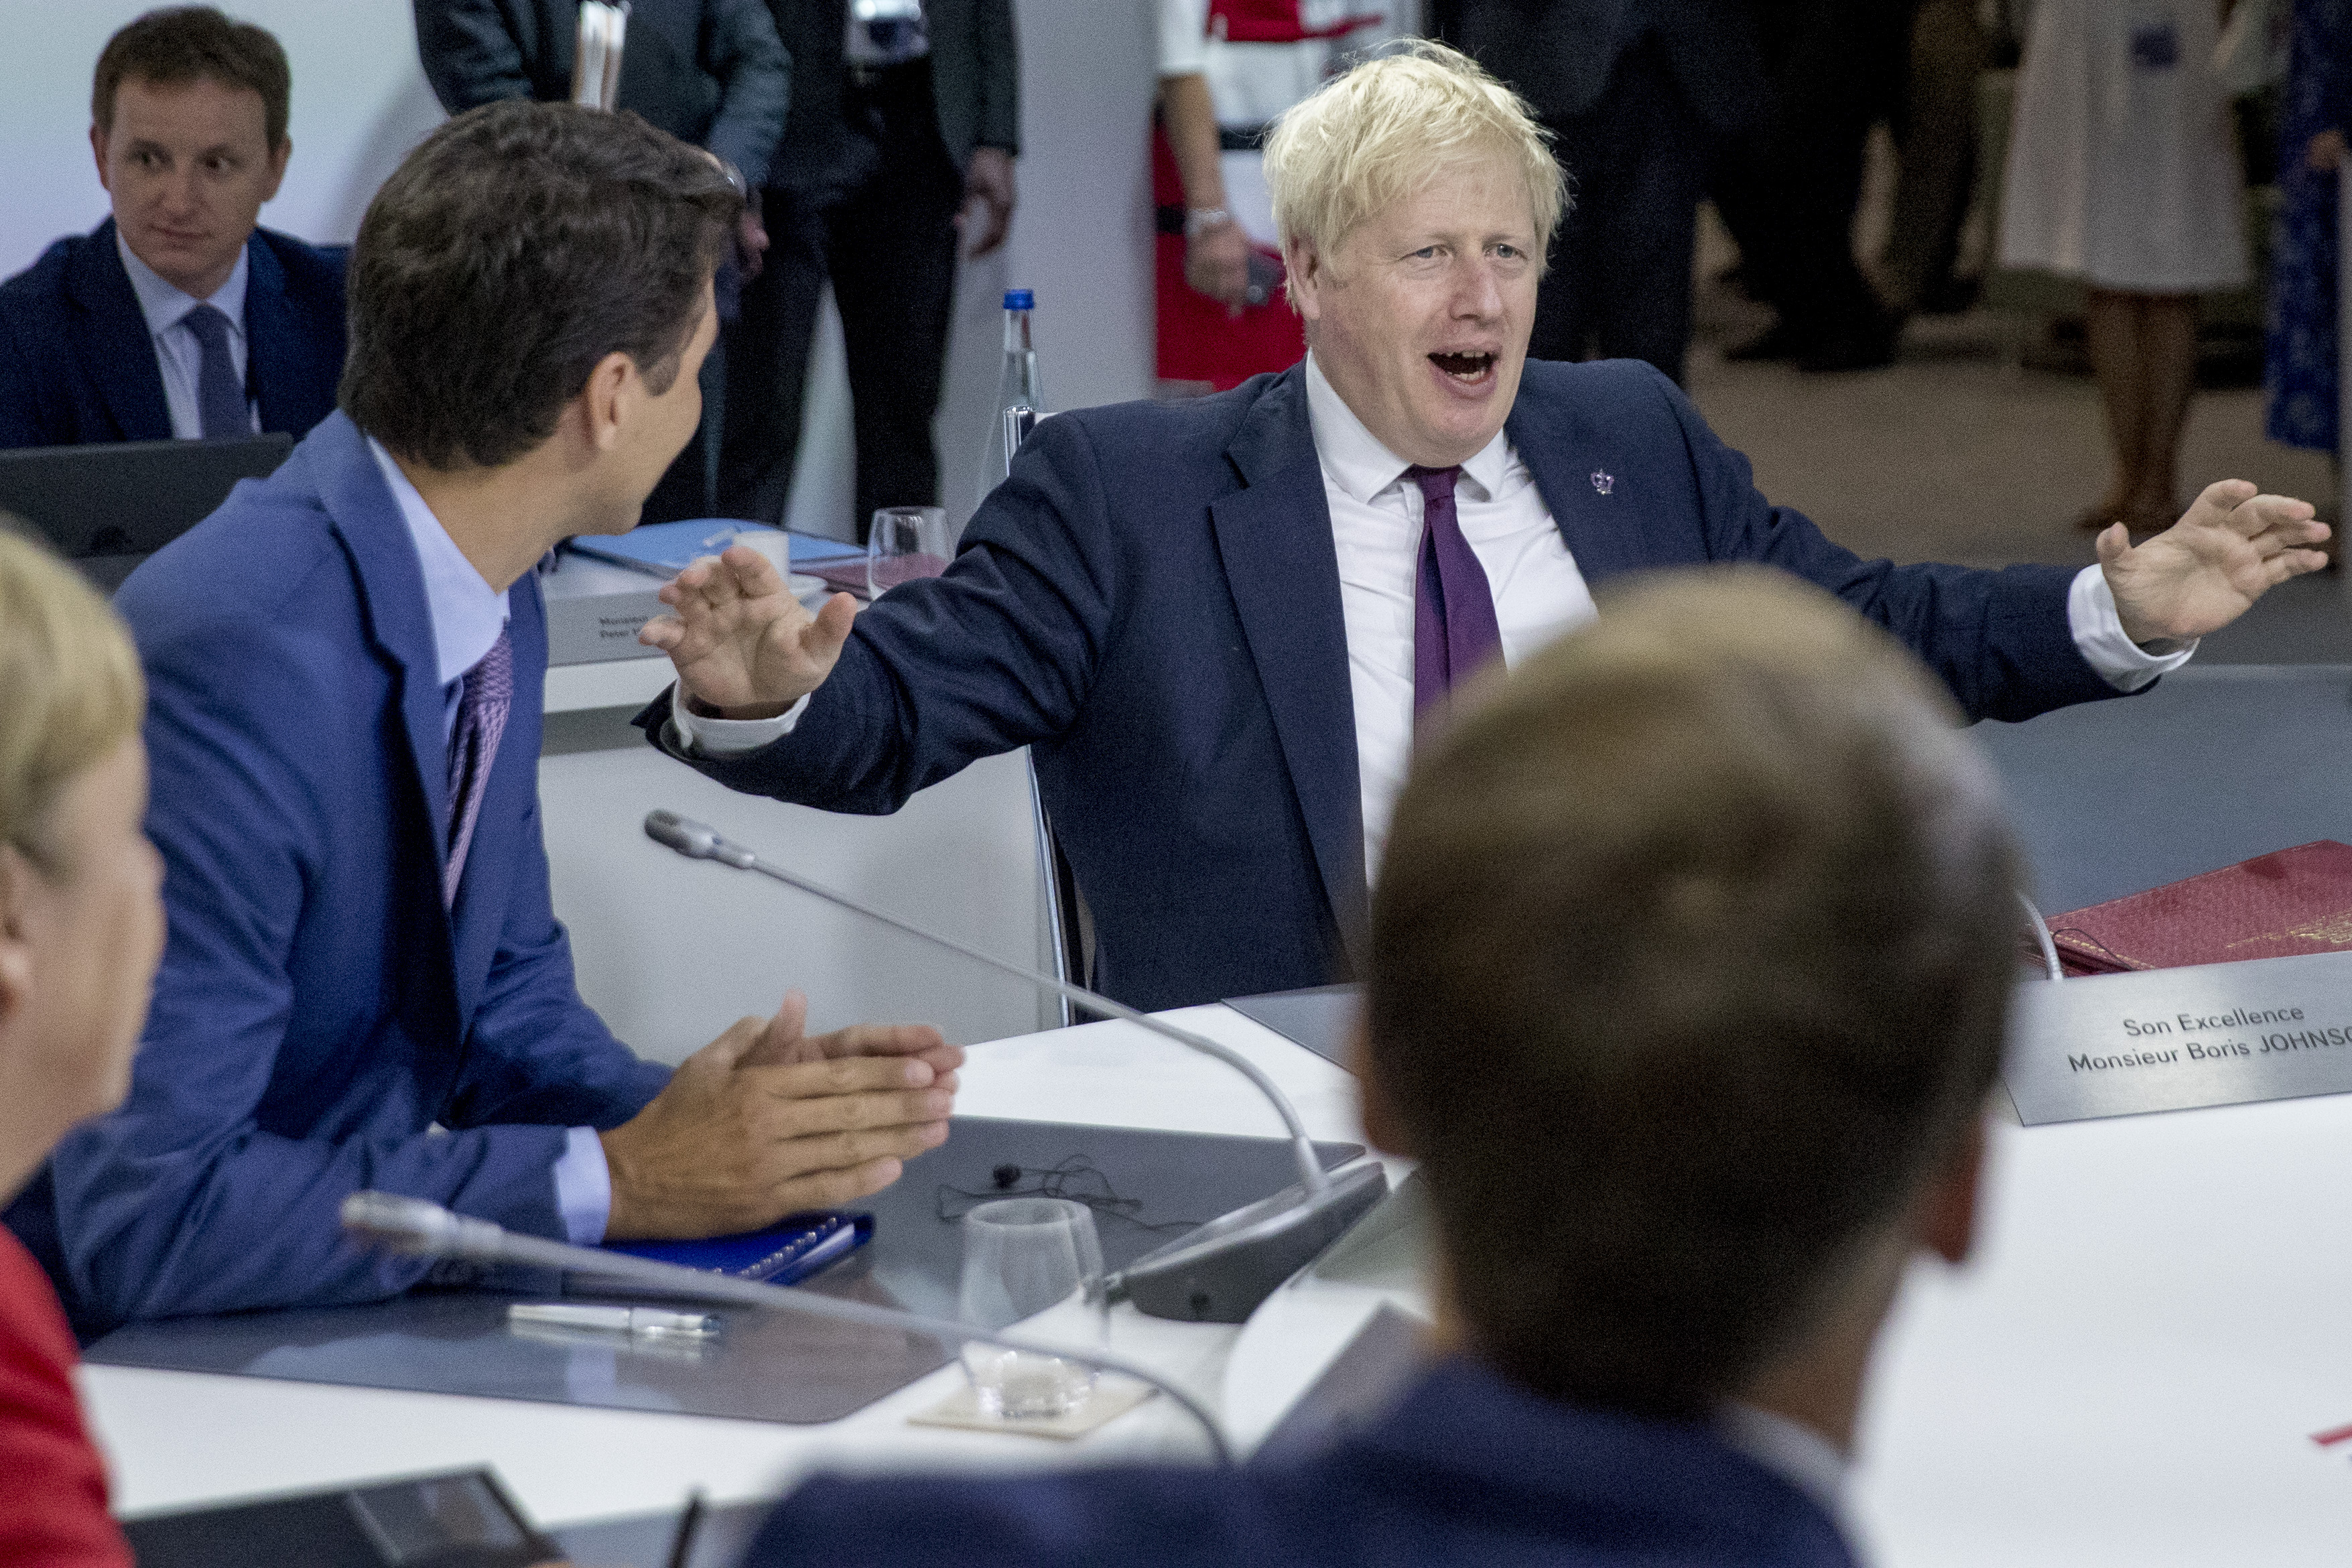 """Britain's Prime Minister Boris Johnson (R) speaks flanked by Canada's Prime Minister Justin Trudeau (L)  during a working session on """"International Economy and Trade, and International Security Agenda"""" in Biarritz, south-west France on August 25, 2019, on the second day of the annual G7 Summit attended by the leaders of the world's seven richest democracies, Britain, Canada, France, Germany, Italy, Japan and the United States. (Photo by Andrew Harnik / POOL / AFP)        (Photo credit should read ANDREW HARNIK/AFP/Getty Images)"""